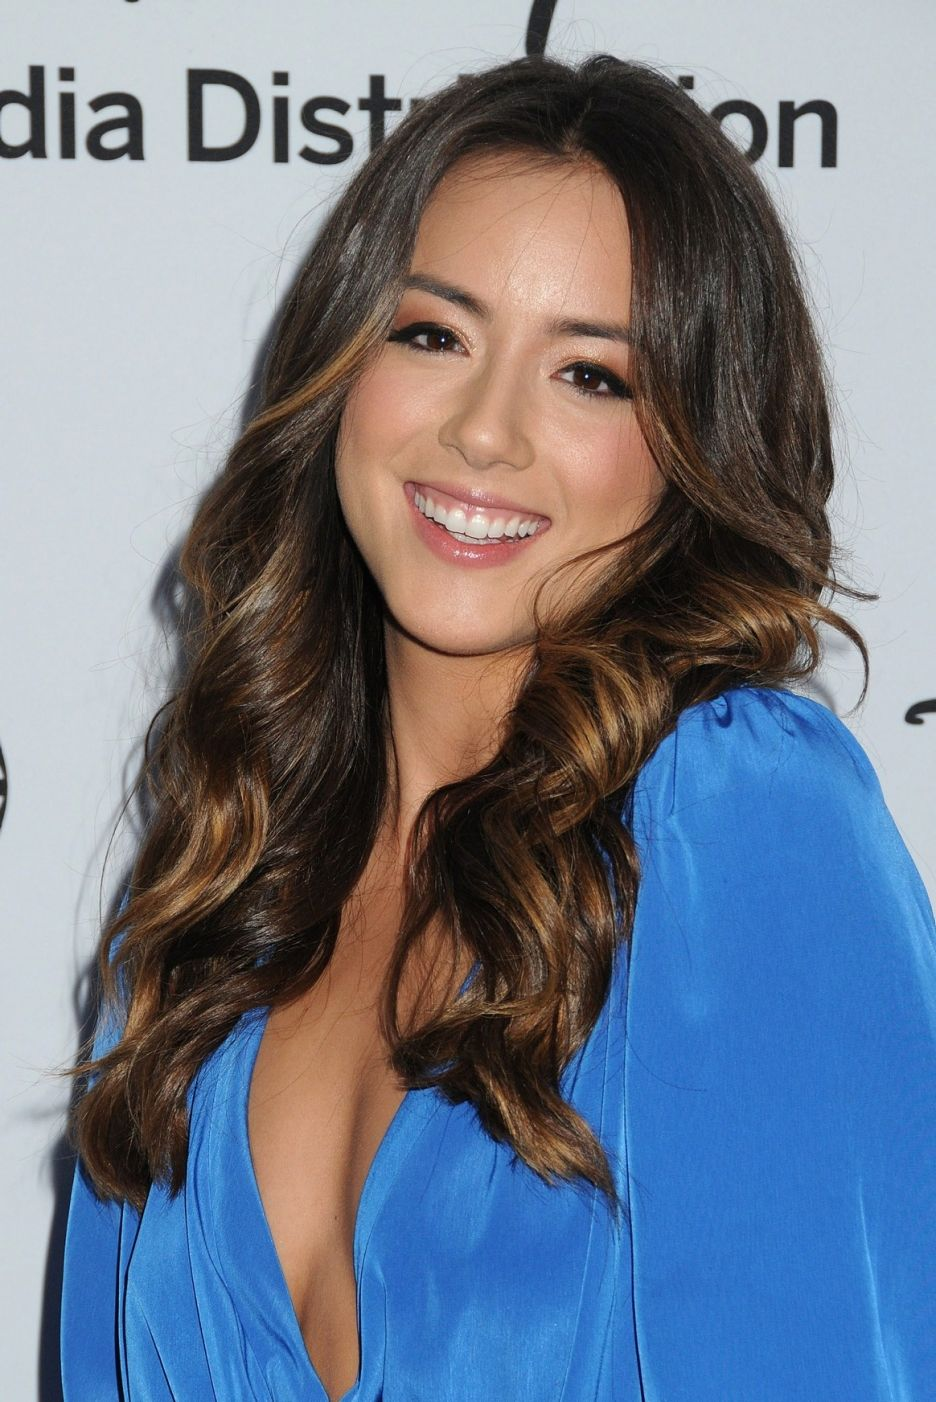 Chloe Bennet: Net worth, House, Car, Salary, Boyfriend ...